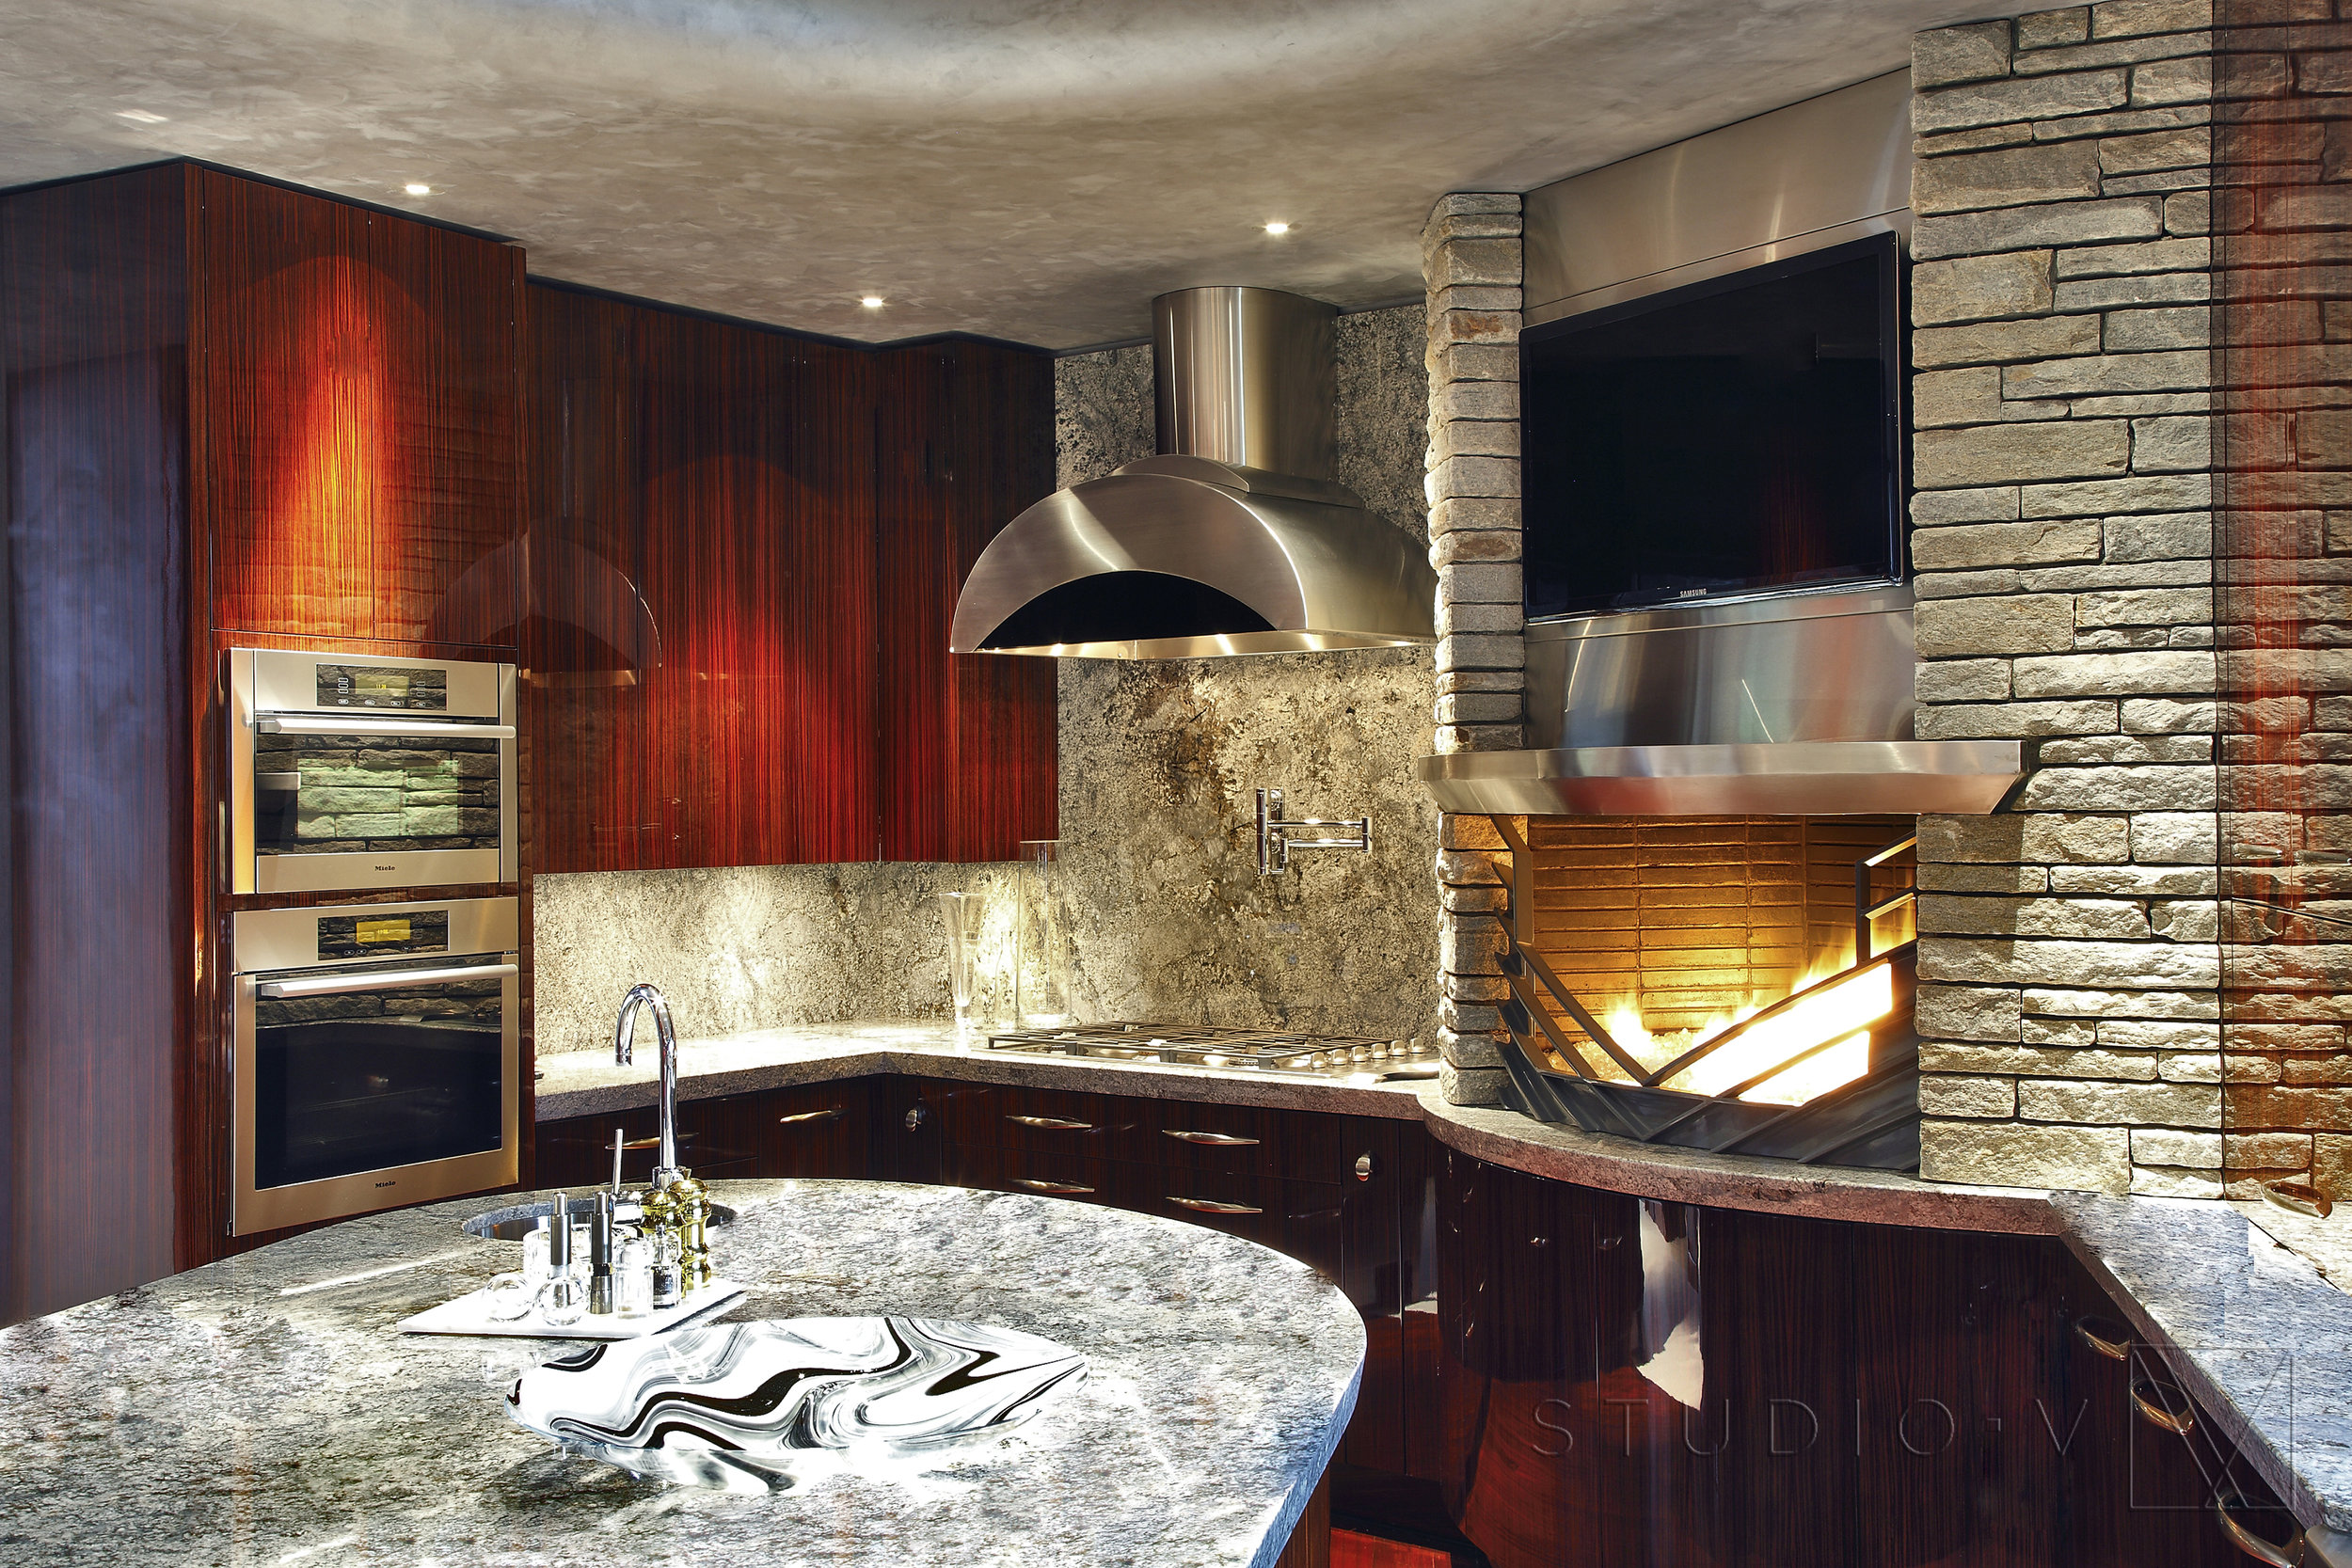 05_Kitchen Studio V Interiors Scottsdale AZ Greenwich CT.jpg